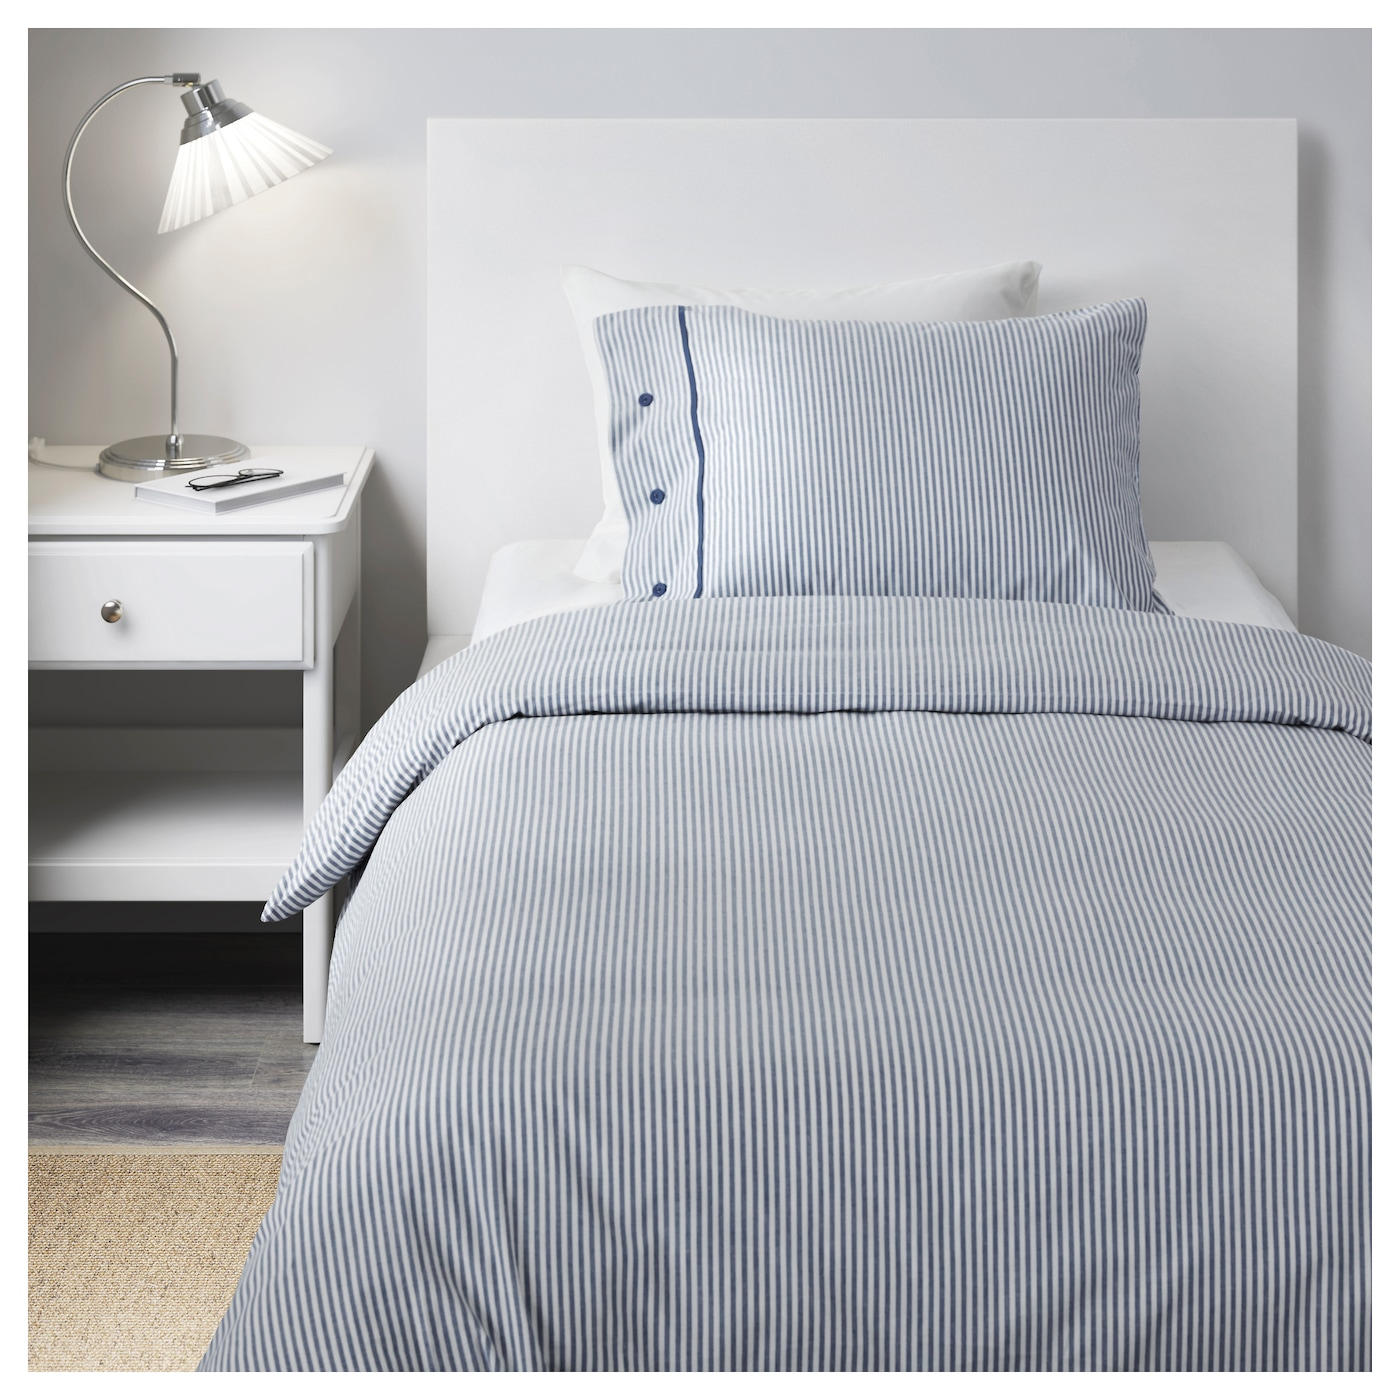 NYPONROS Quilt cover and pillowcase White/blue 150x200/50x80 cm - IKEA : ikea quilt - Adamdwight.com